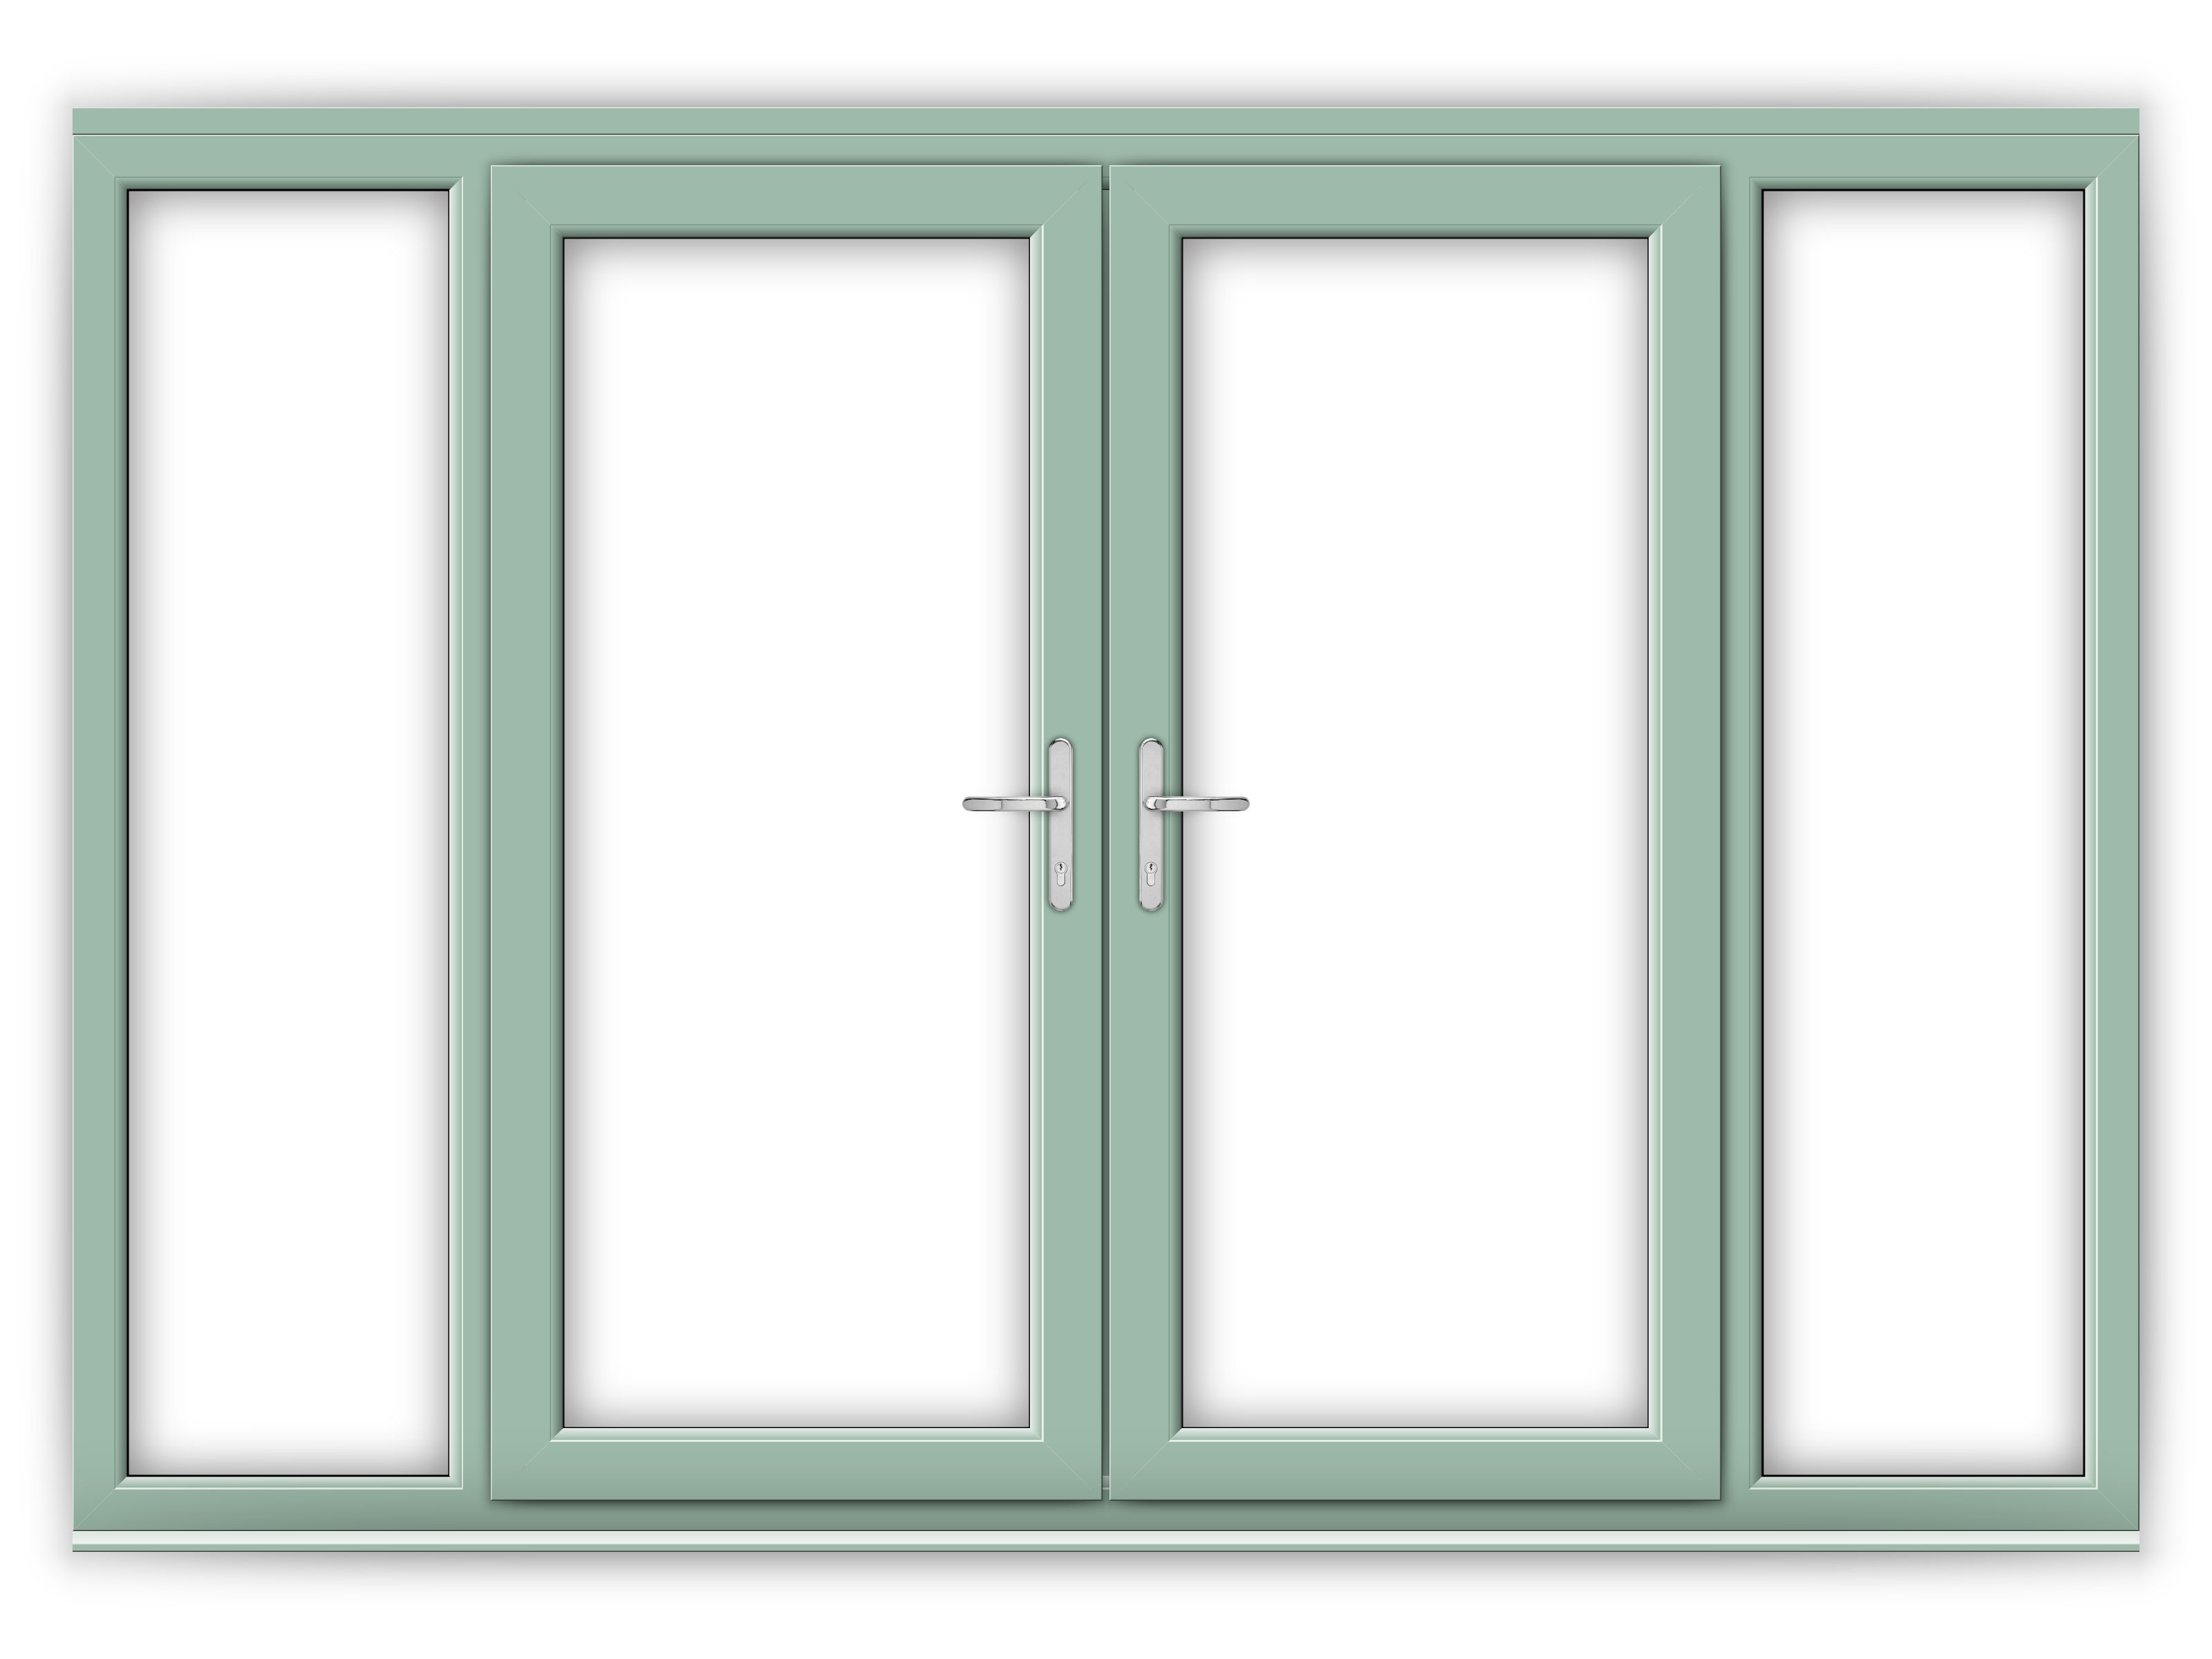 6ft chartwell green upvc french doors with wide side panels flying doors. Black Bedroom Furniture Sets. Home Design Ideas